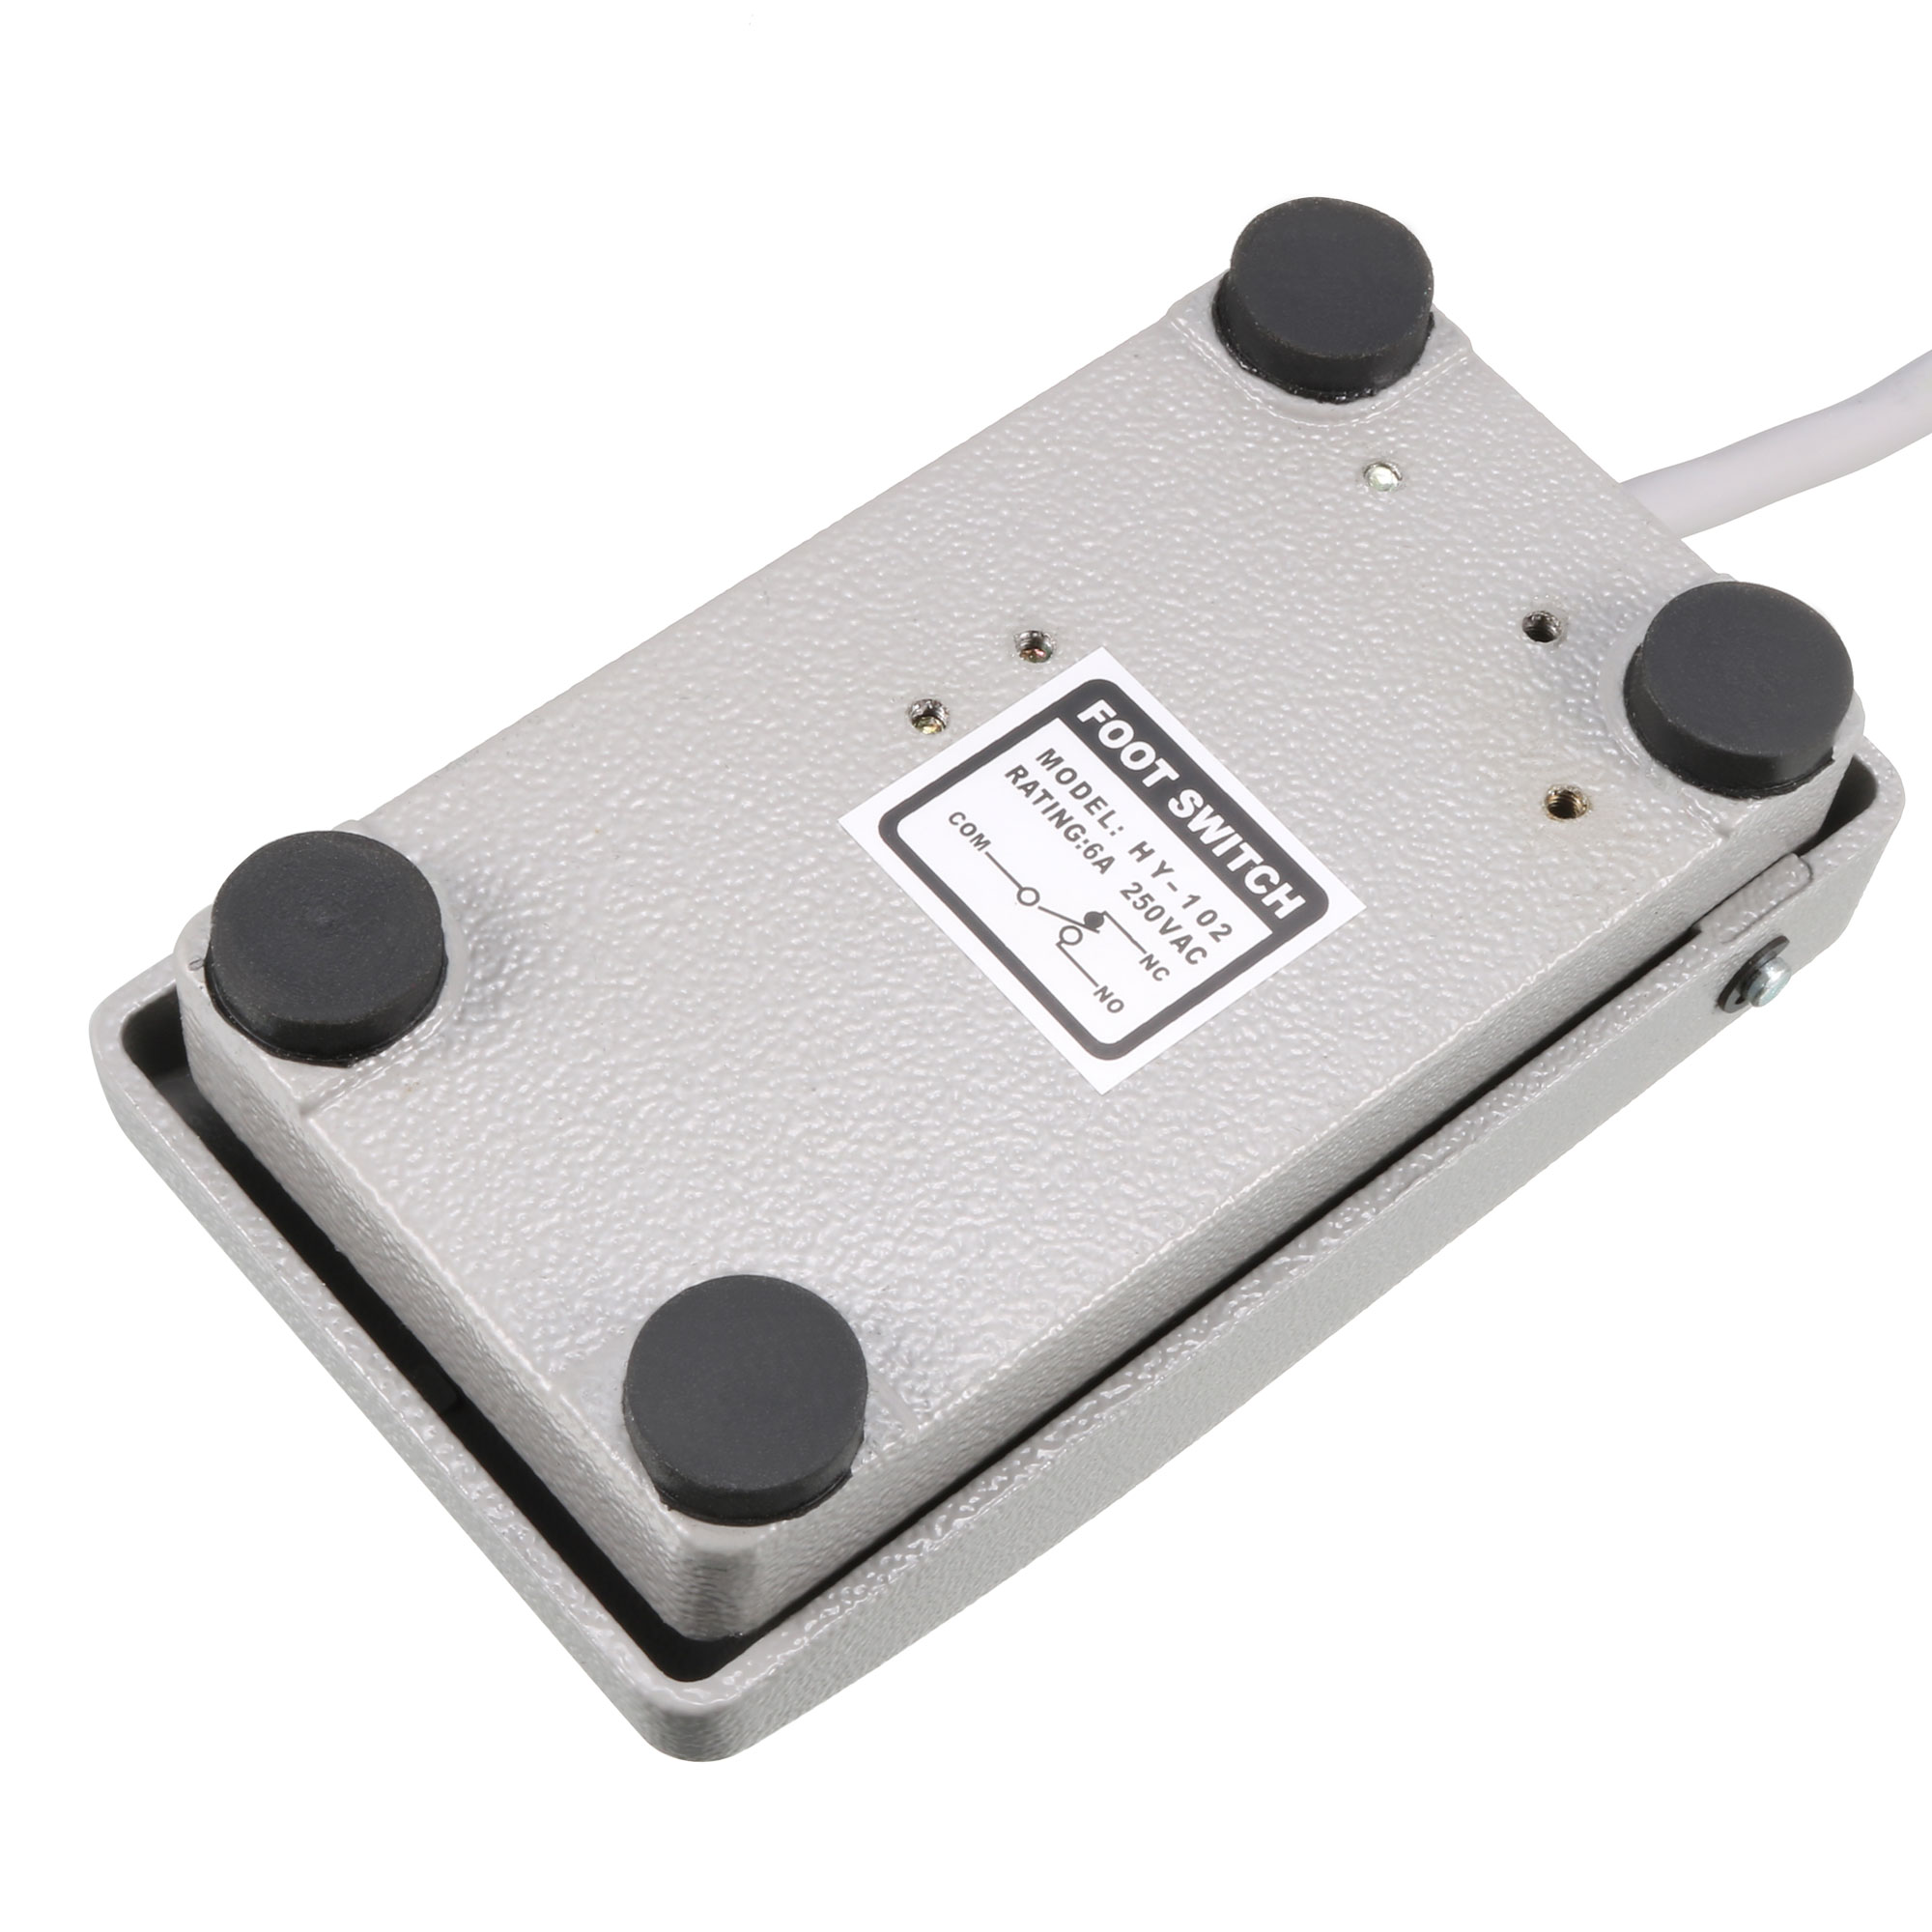 HY-102 SPDT NO NC Industrial Electric Momentary Power Foot Pedal Switch, Aluminum Case, 25CM Cable - image 1 de 4